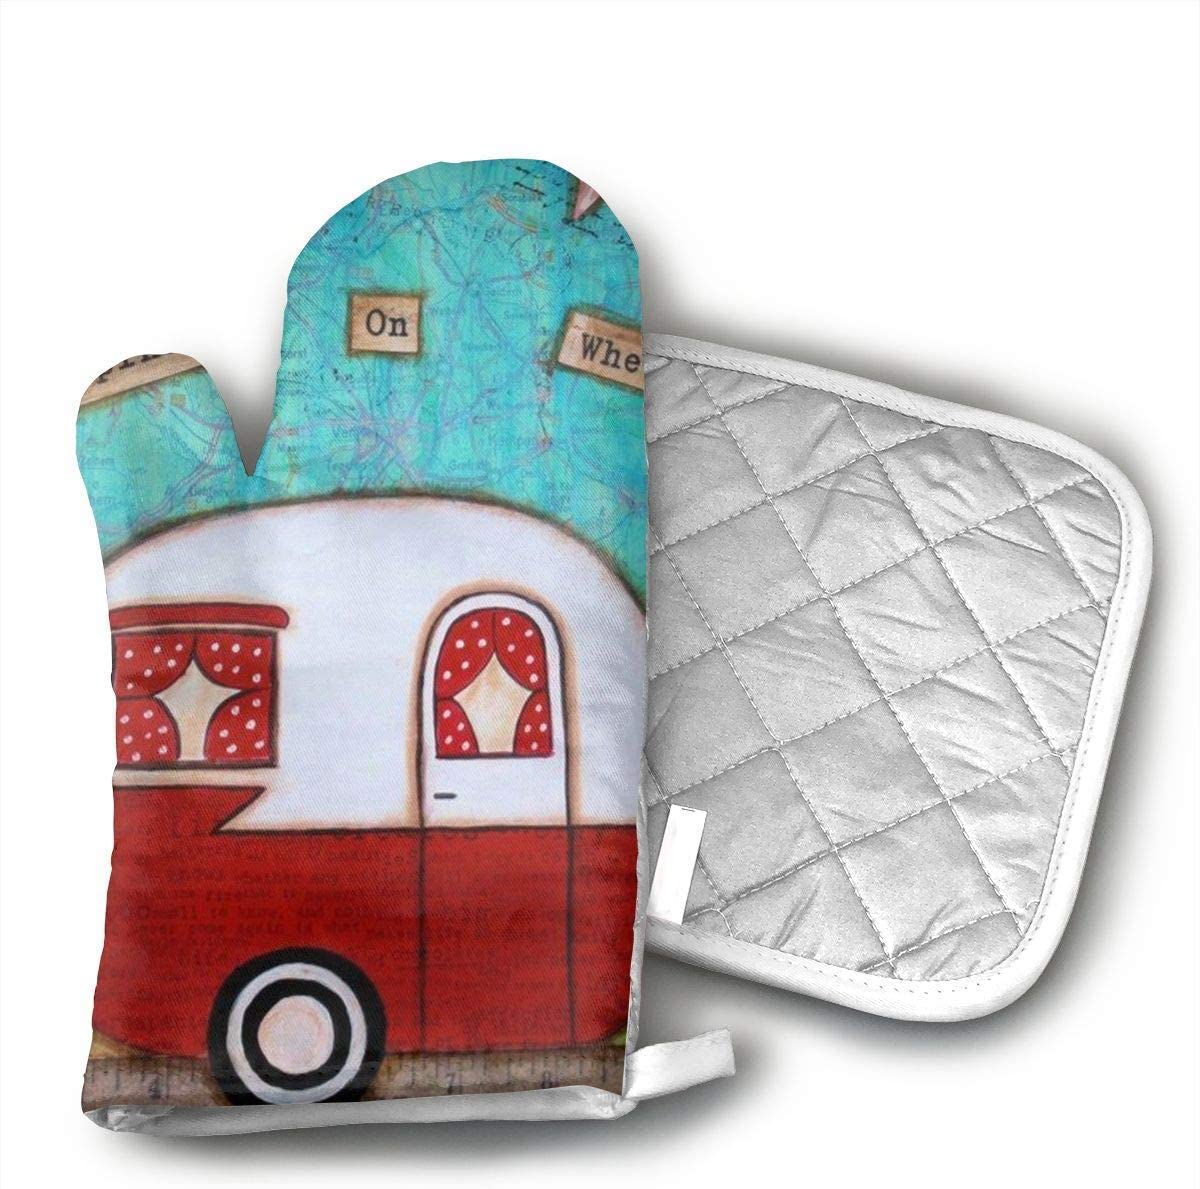 Vintage Camper Oven Mitts and Pot Holders Set with Polyester Cotton Non-Slip Grip, Heat Resistant, Oven Gloves for BBQ Cooking Baking, Grilling